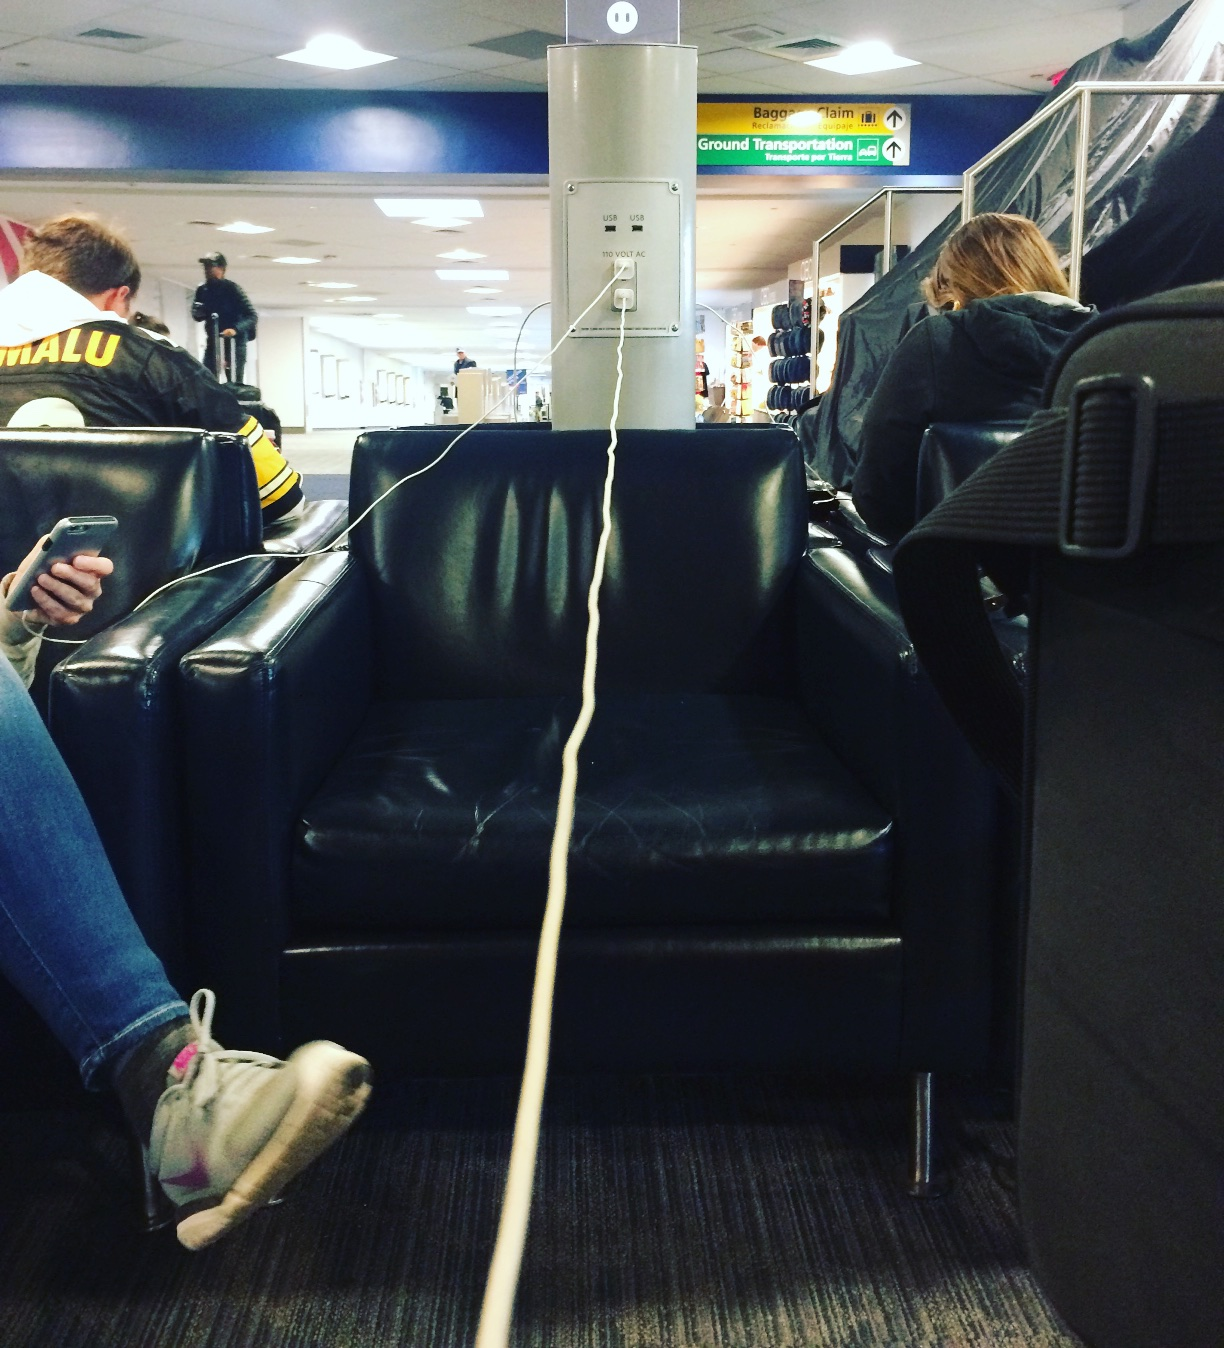 The longest iPhone cable in the world.